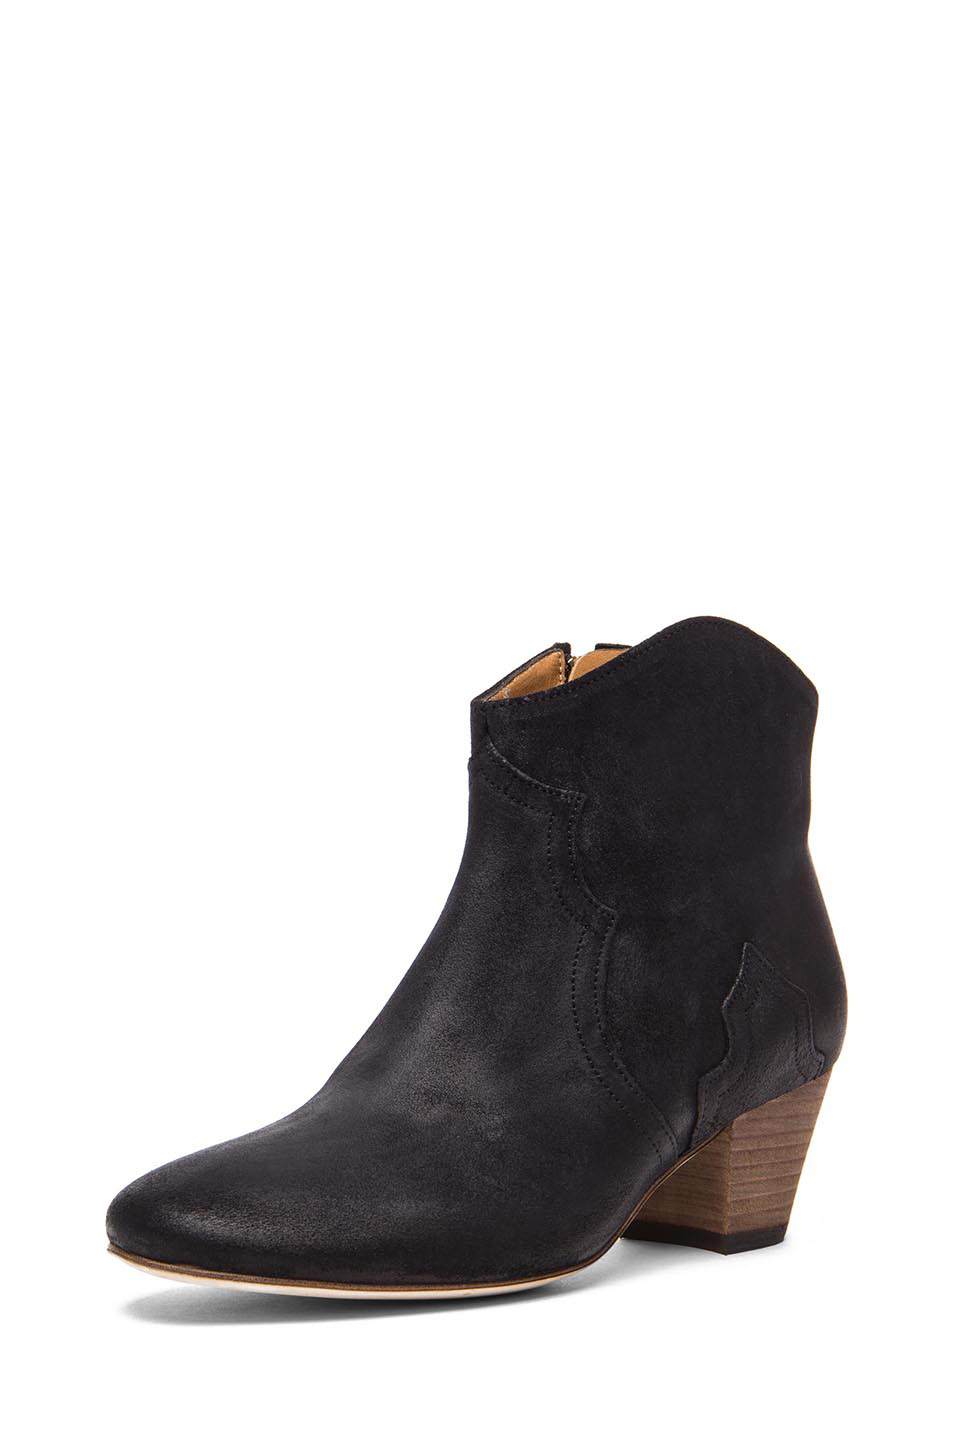 Isabel Marant|Dicker Velvet Boot in Black